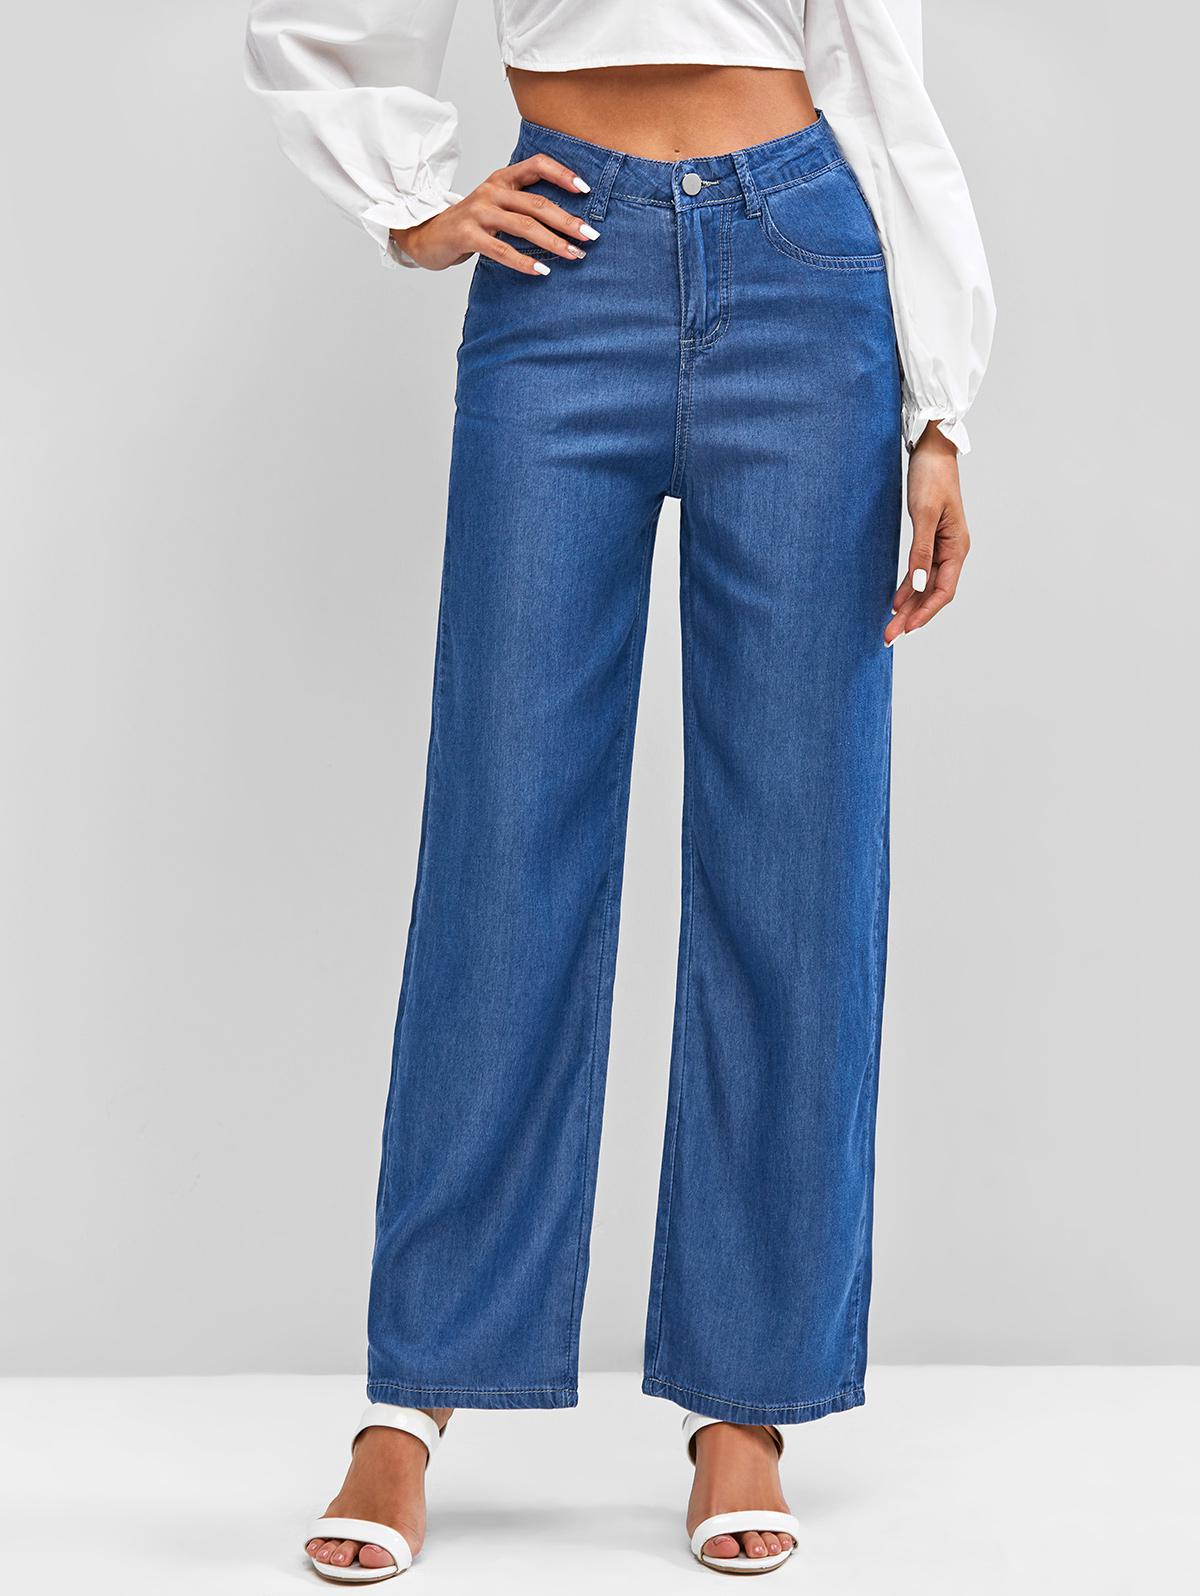 High Waisted Wide Leg Chambray Jeans